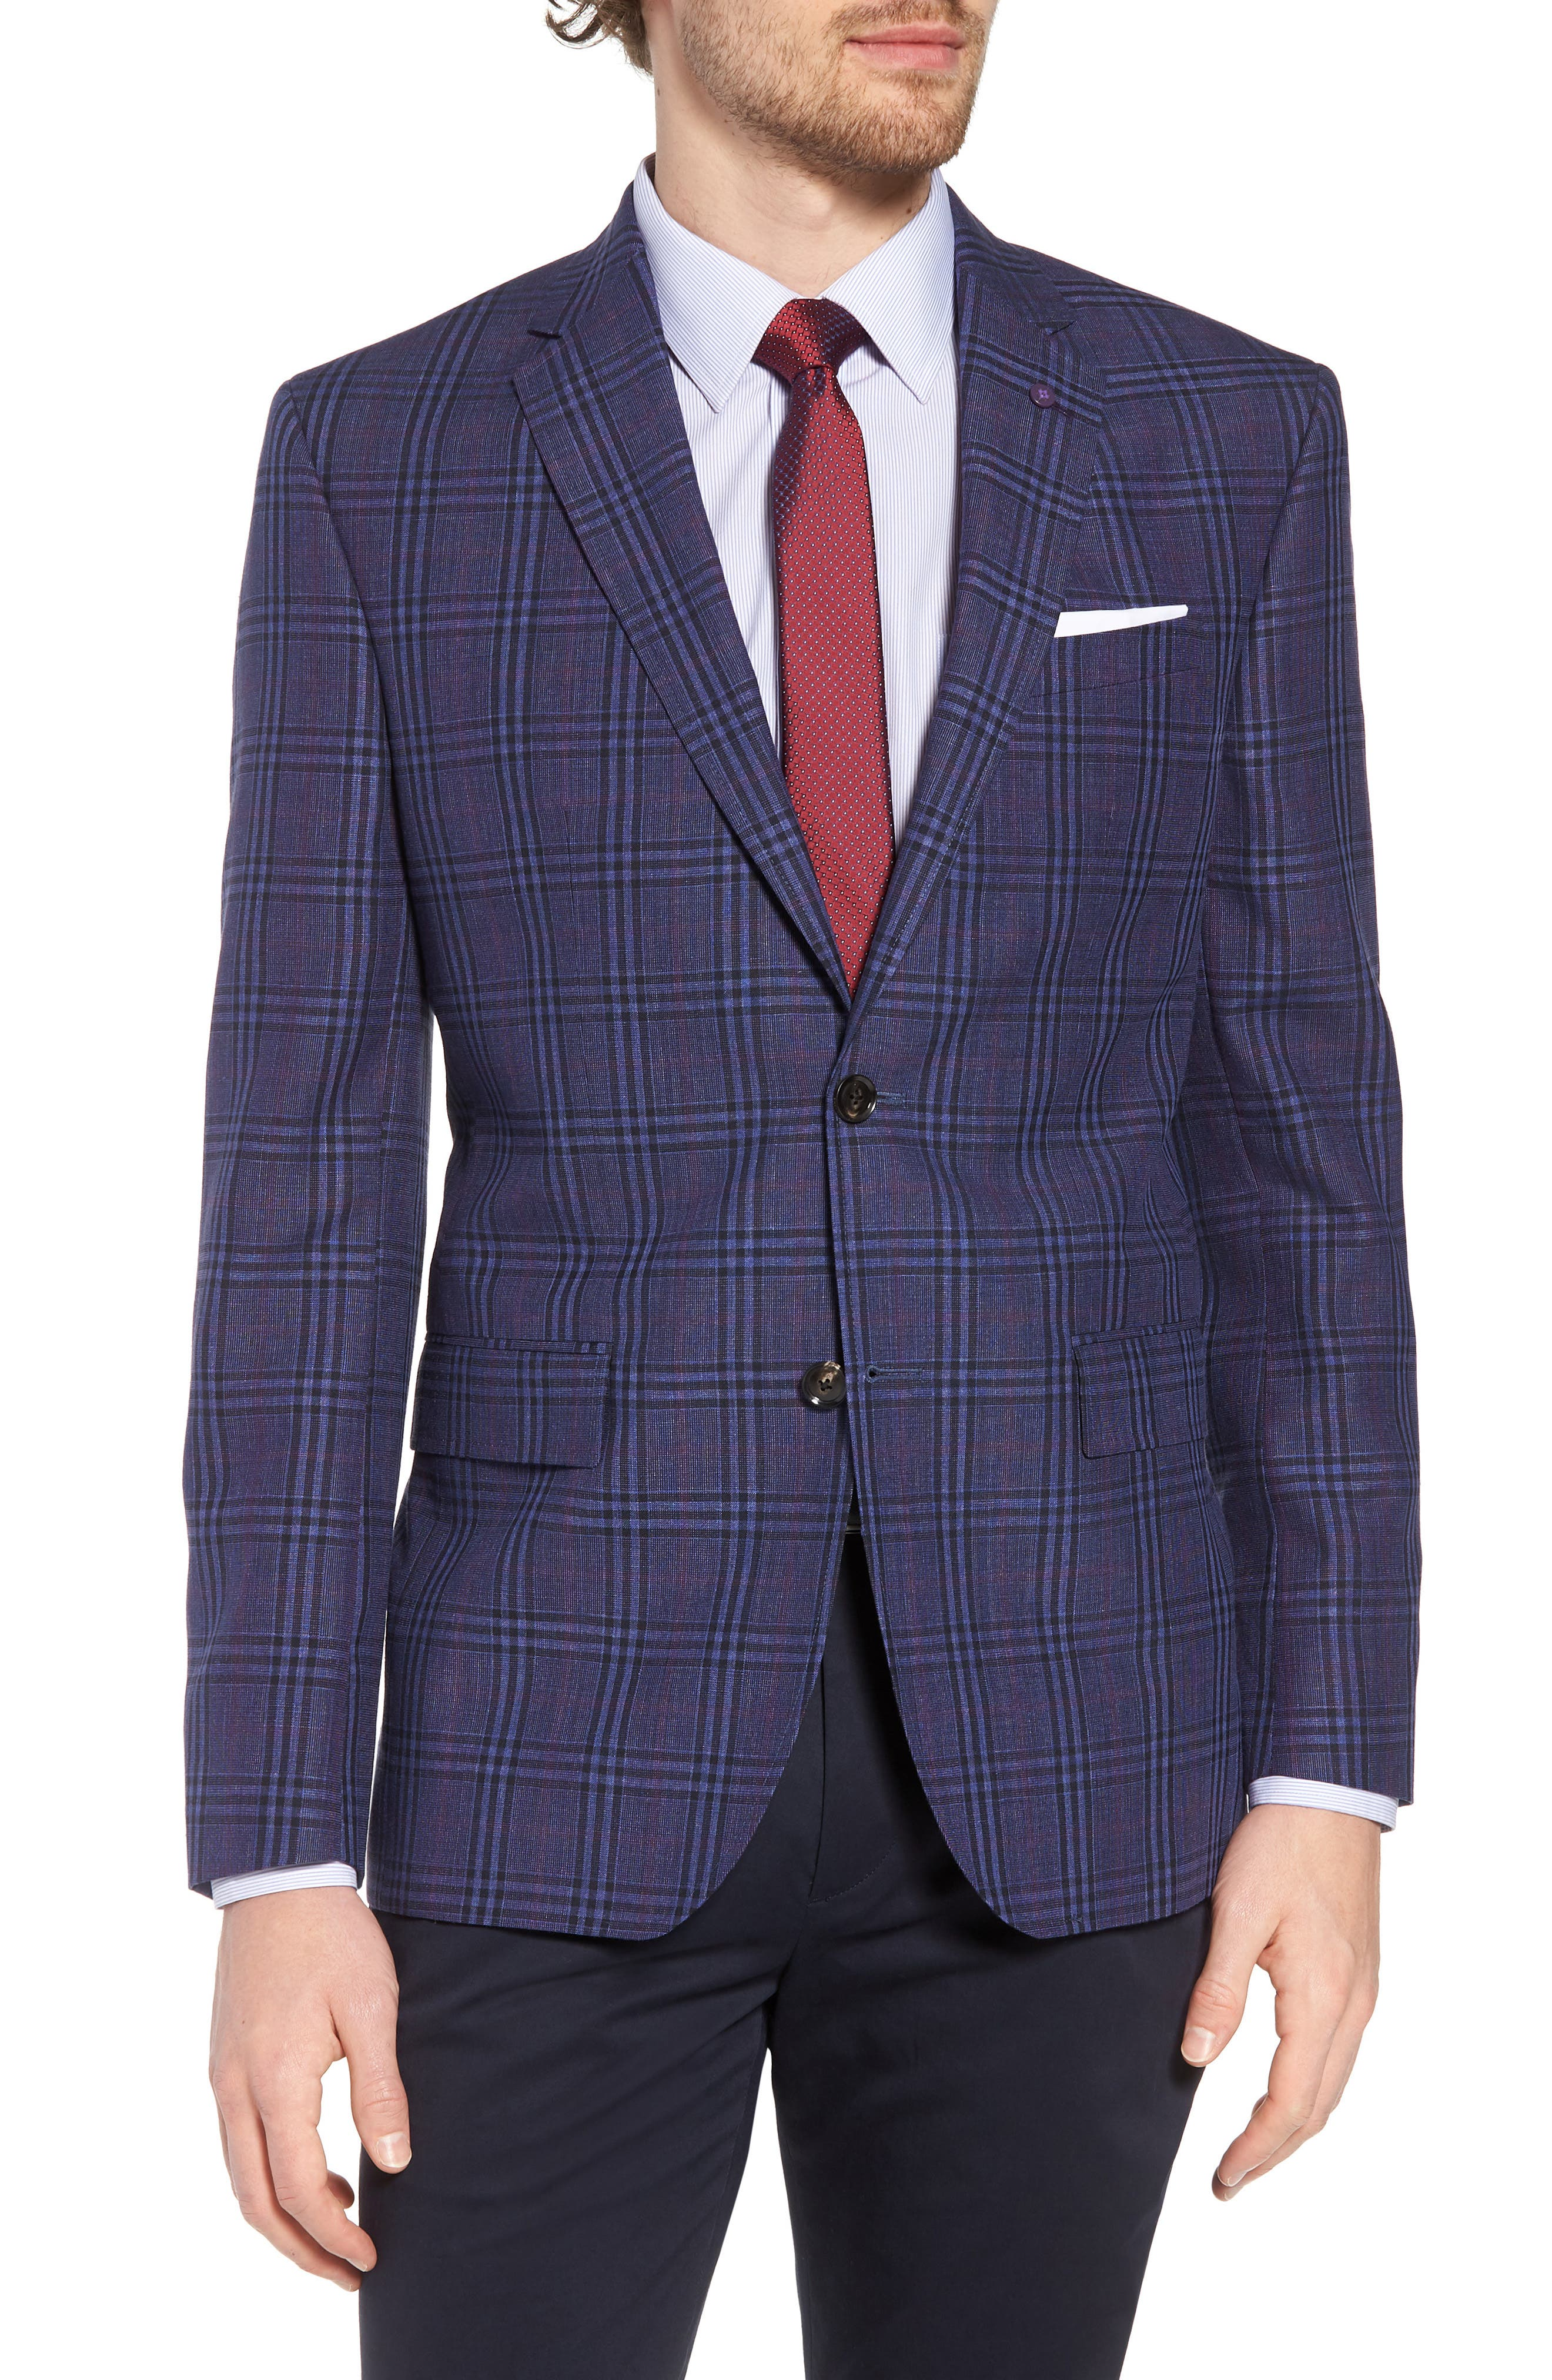 Alternate Image 1 Selected - Ted Baker London Jay Trim Fit Plaid Wool & Linen Sport Coat